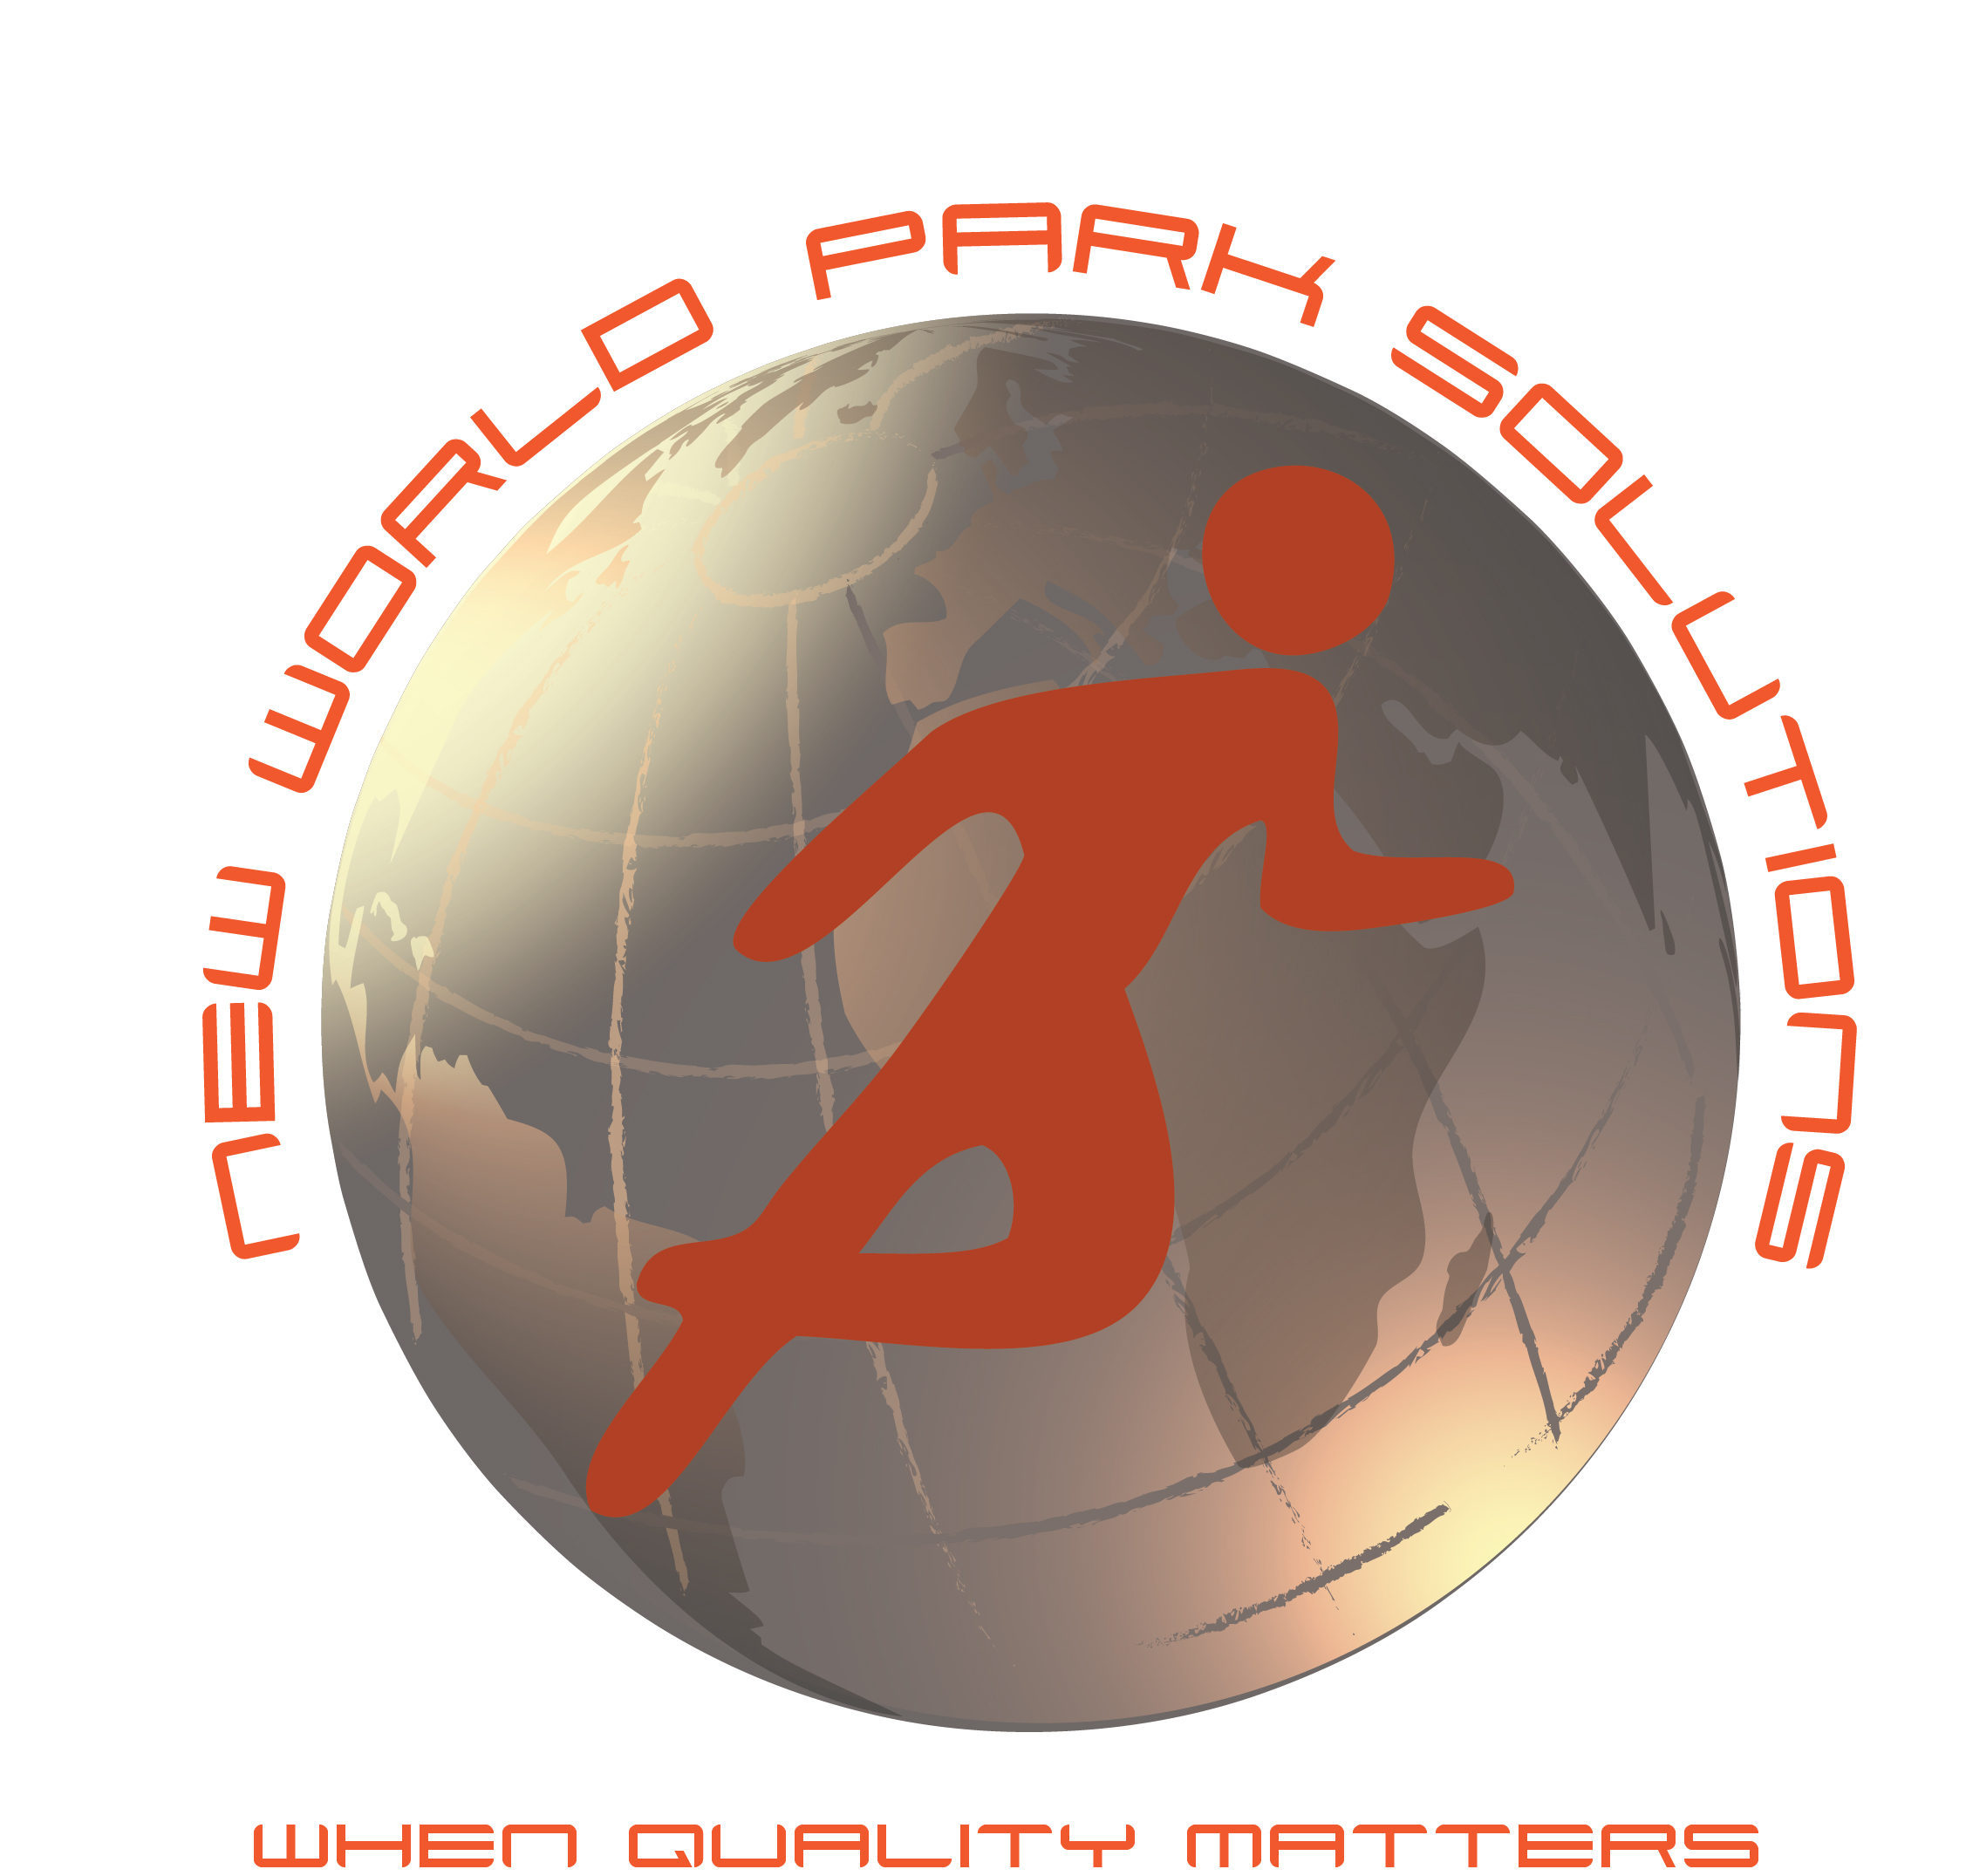 New World Park Solutions